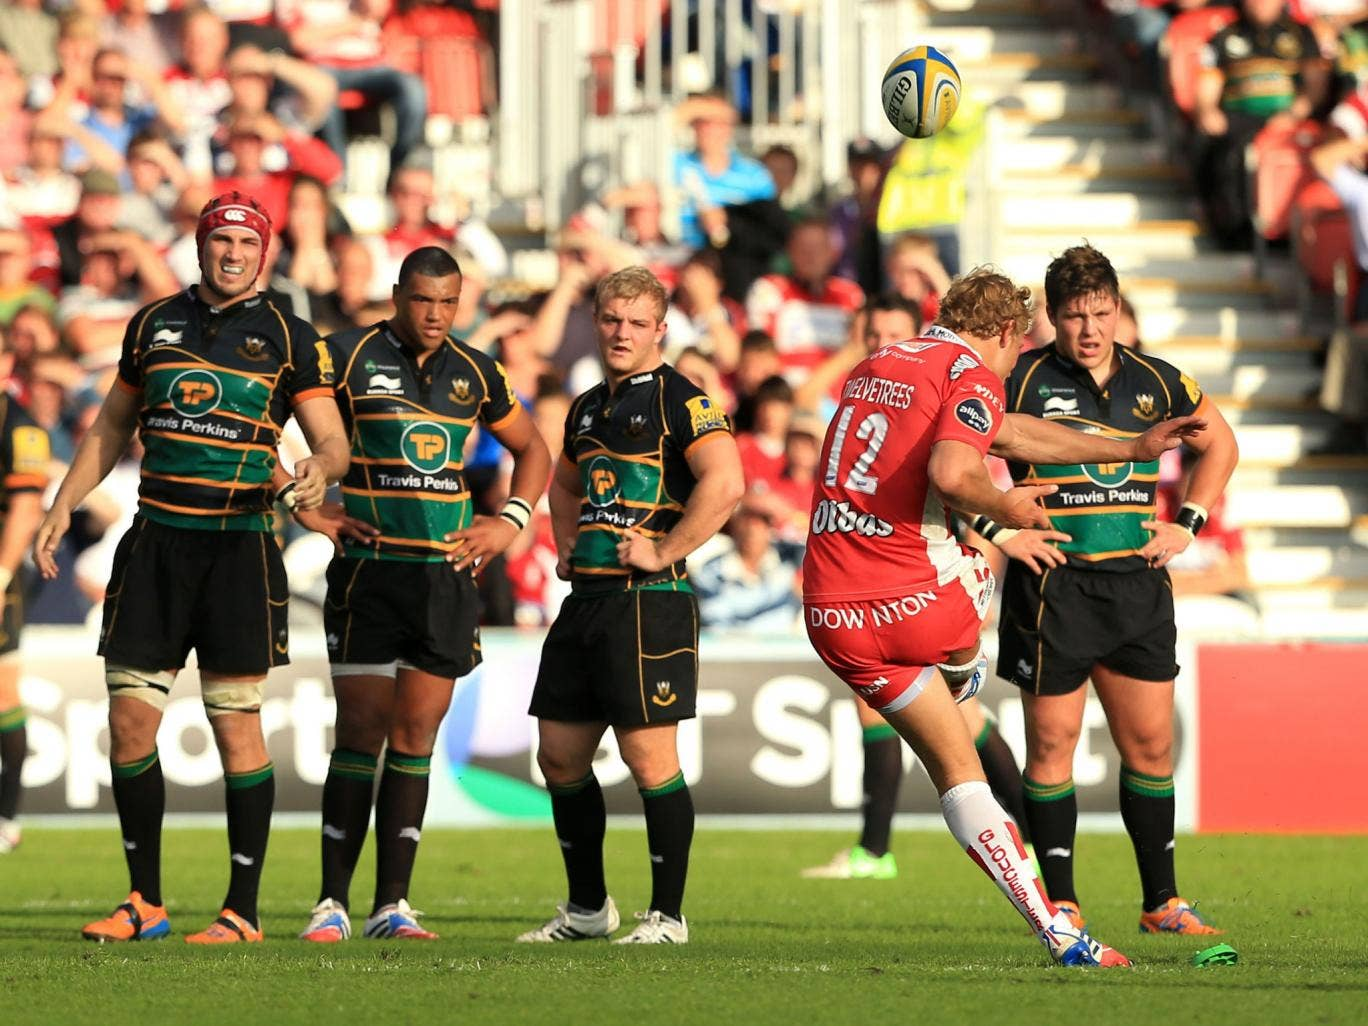 Boot polish: Billy Twelvetrees lands a penalty with the last kick of the match